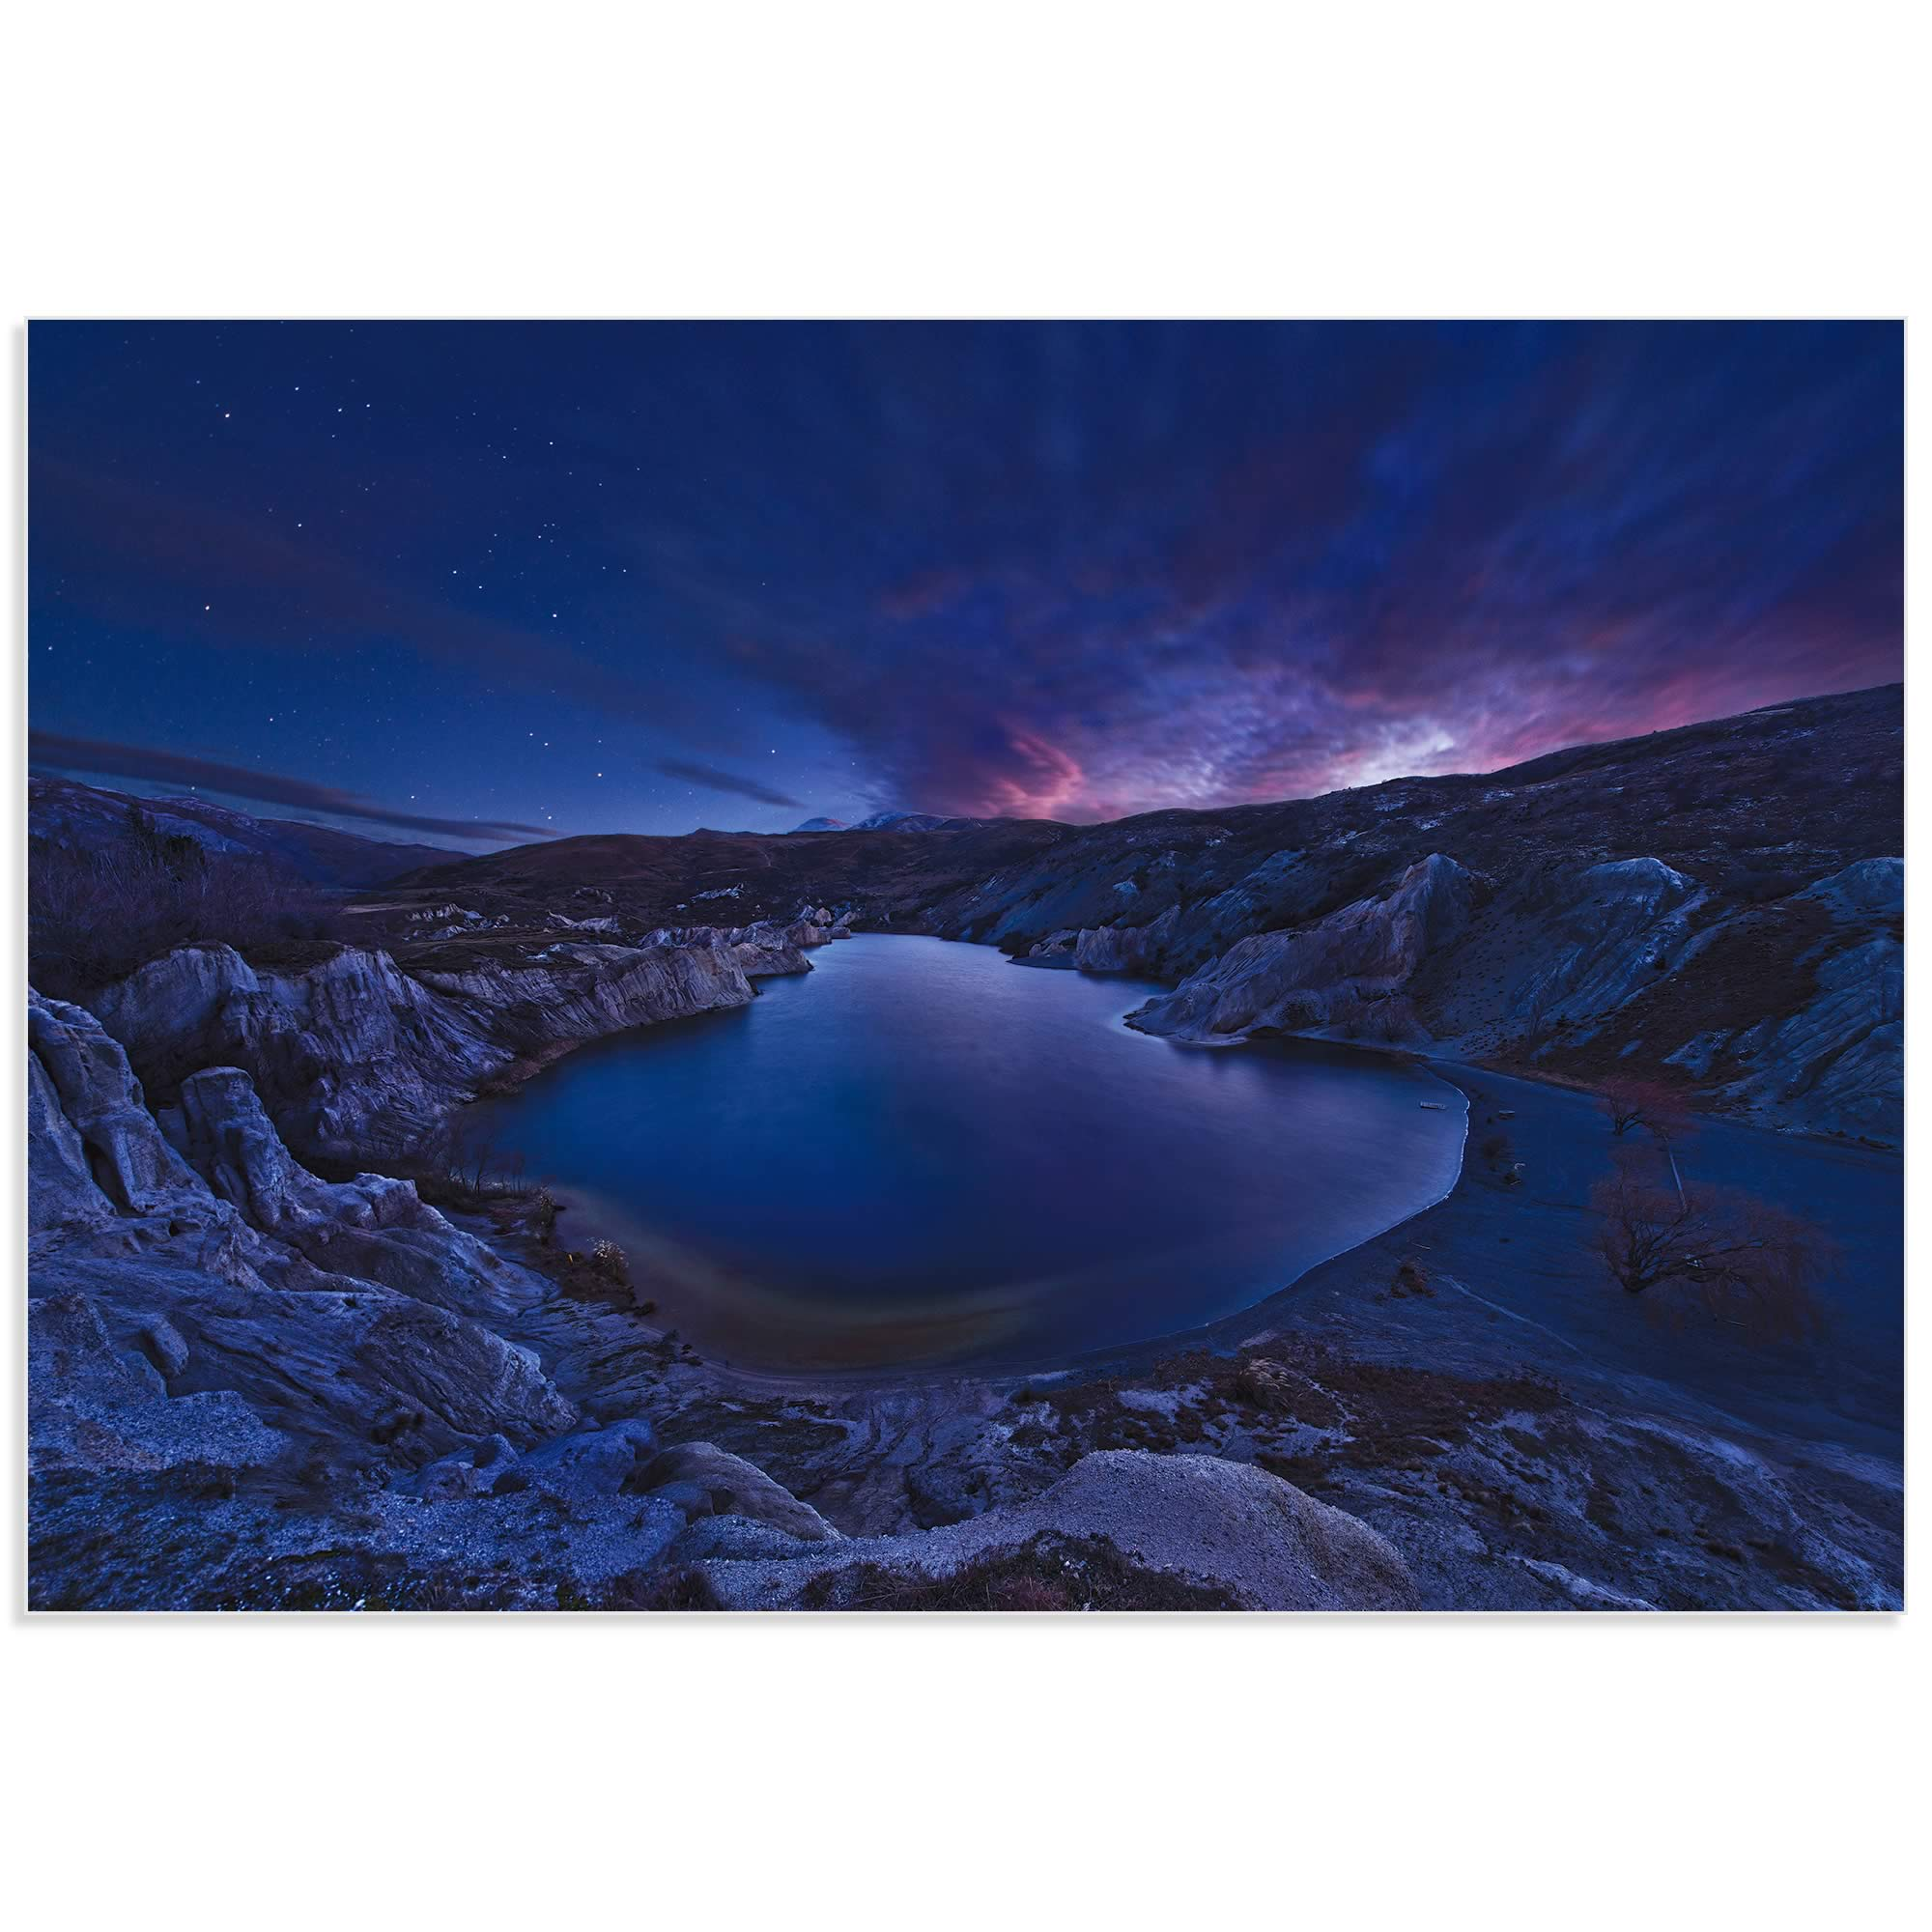 Blue Lake by Yan Zhang - Water Art on Metal or Acrylic - Alternate View 2